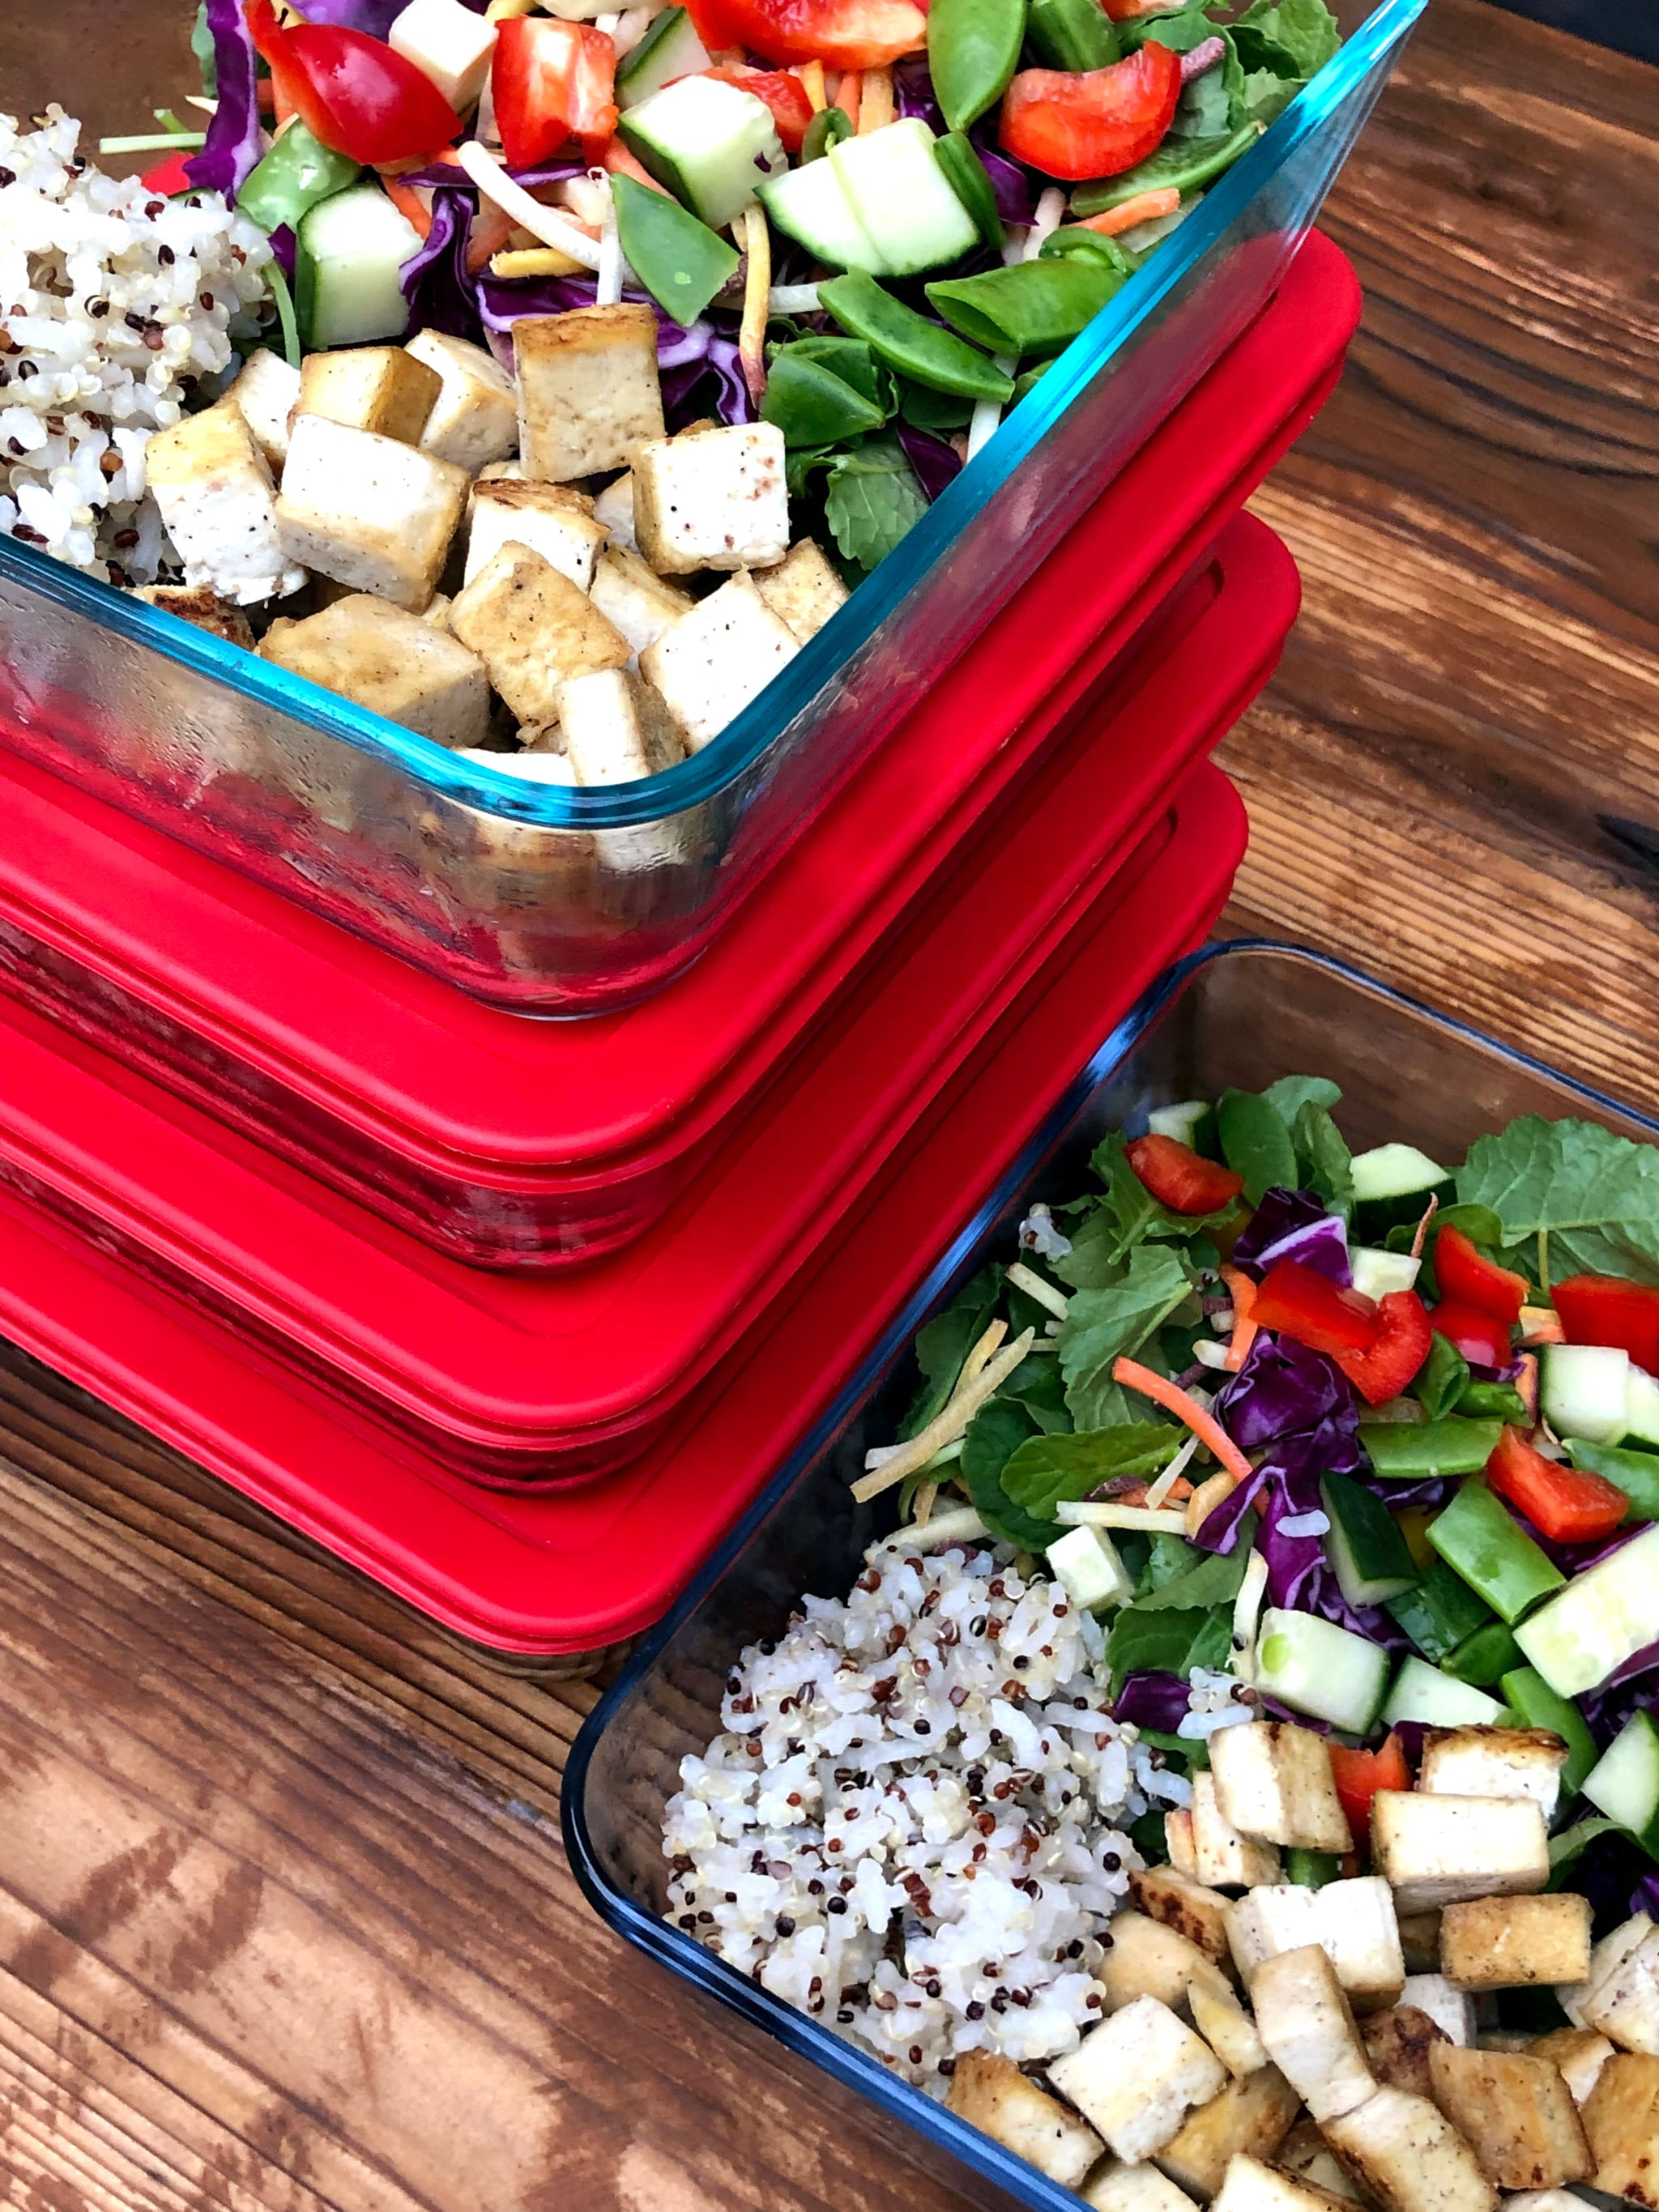 My Friends Think I'm Nuts, but Here's Why I've Meal Prepped My Husband's Lunches For a Year